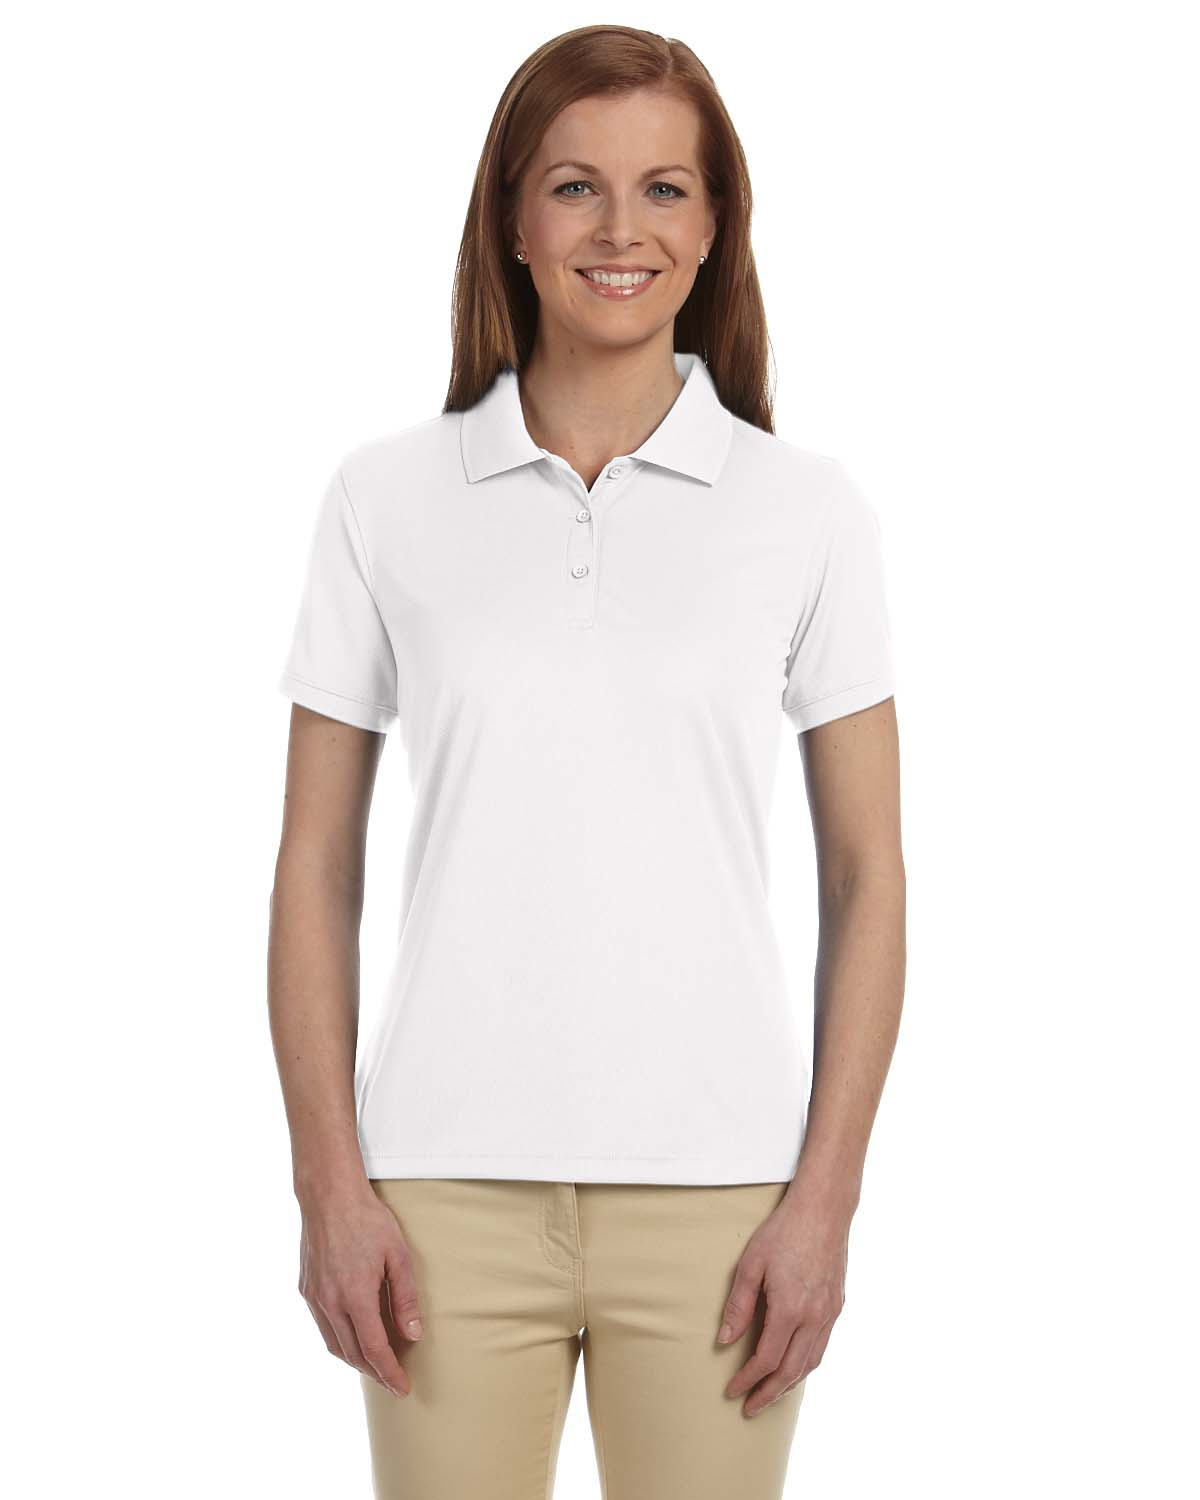 Devon Jones Dg385w Womens Solid Mesh Polo Shirtmax